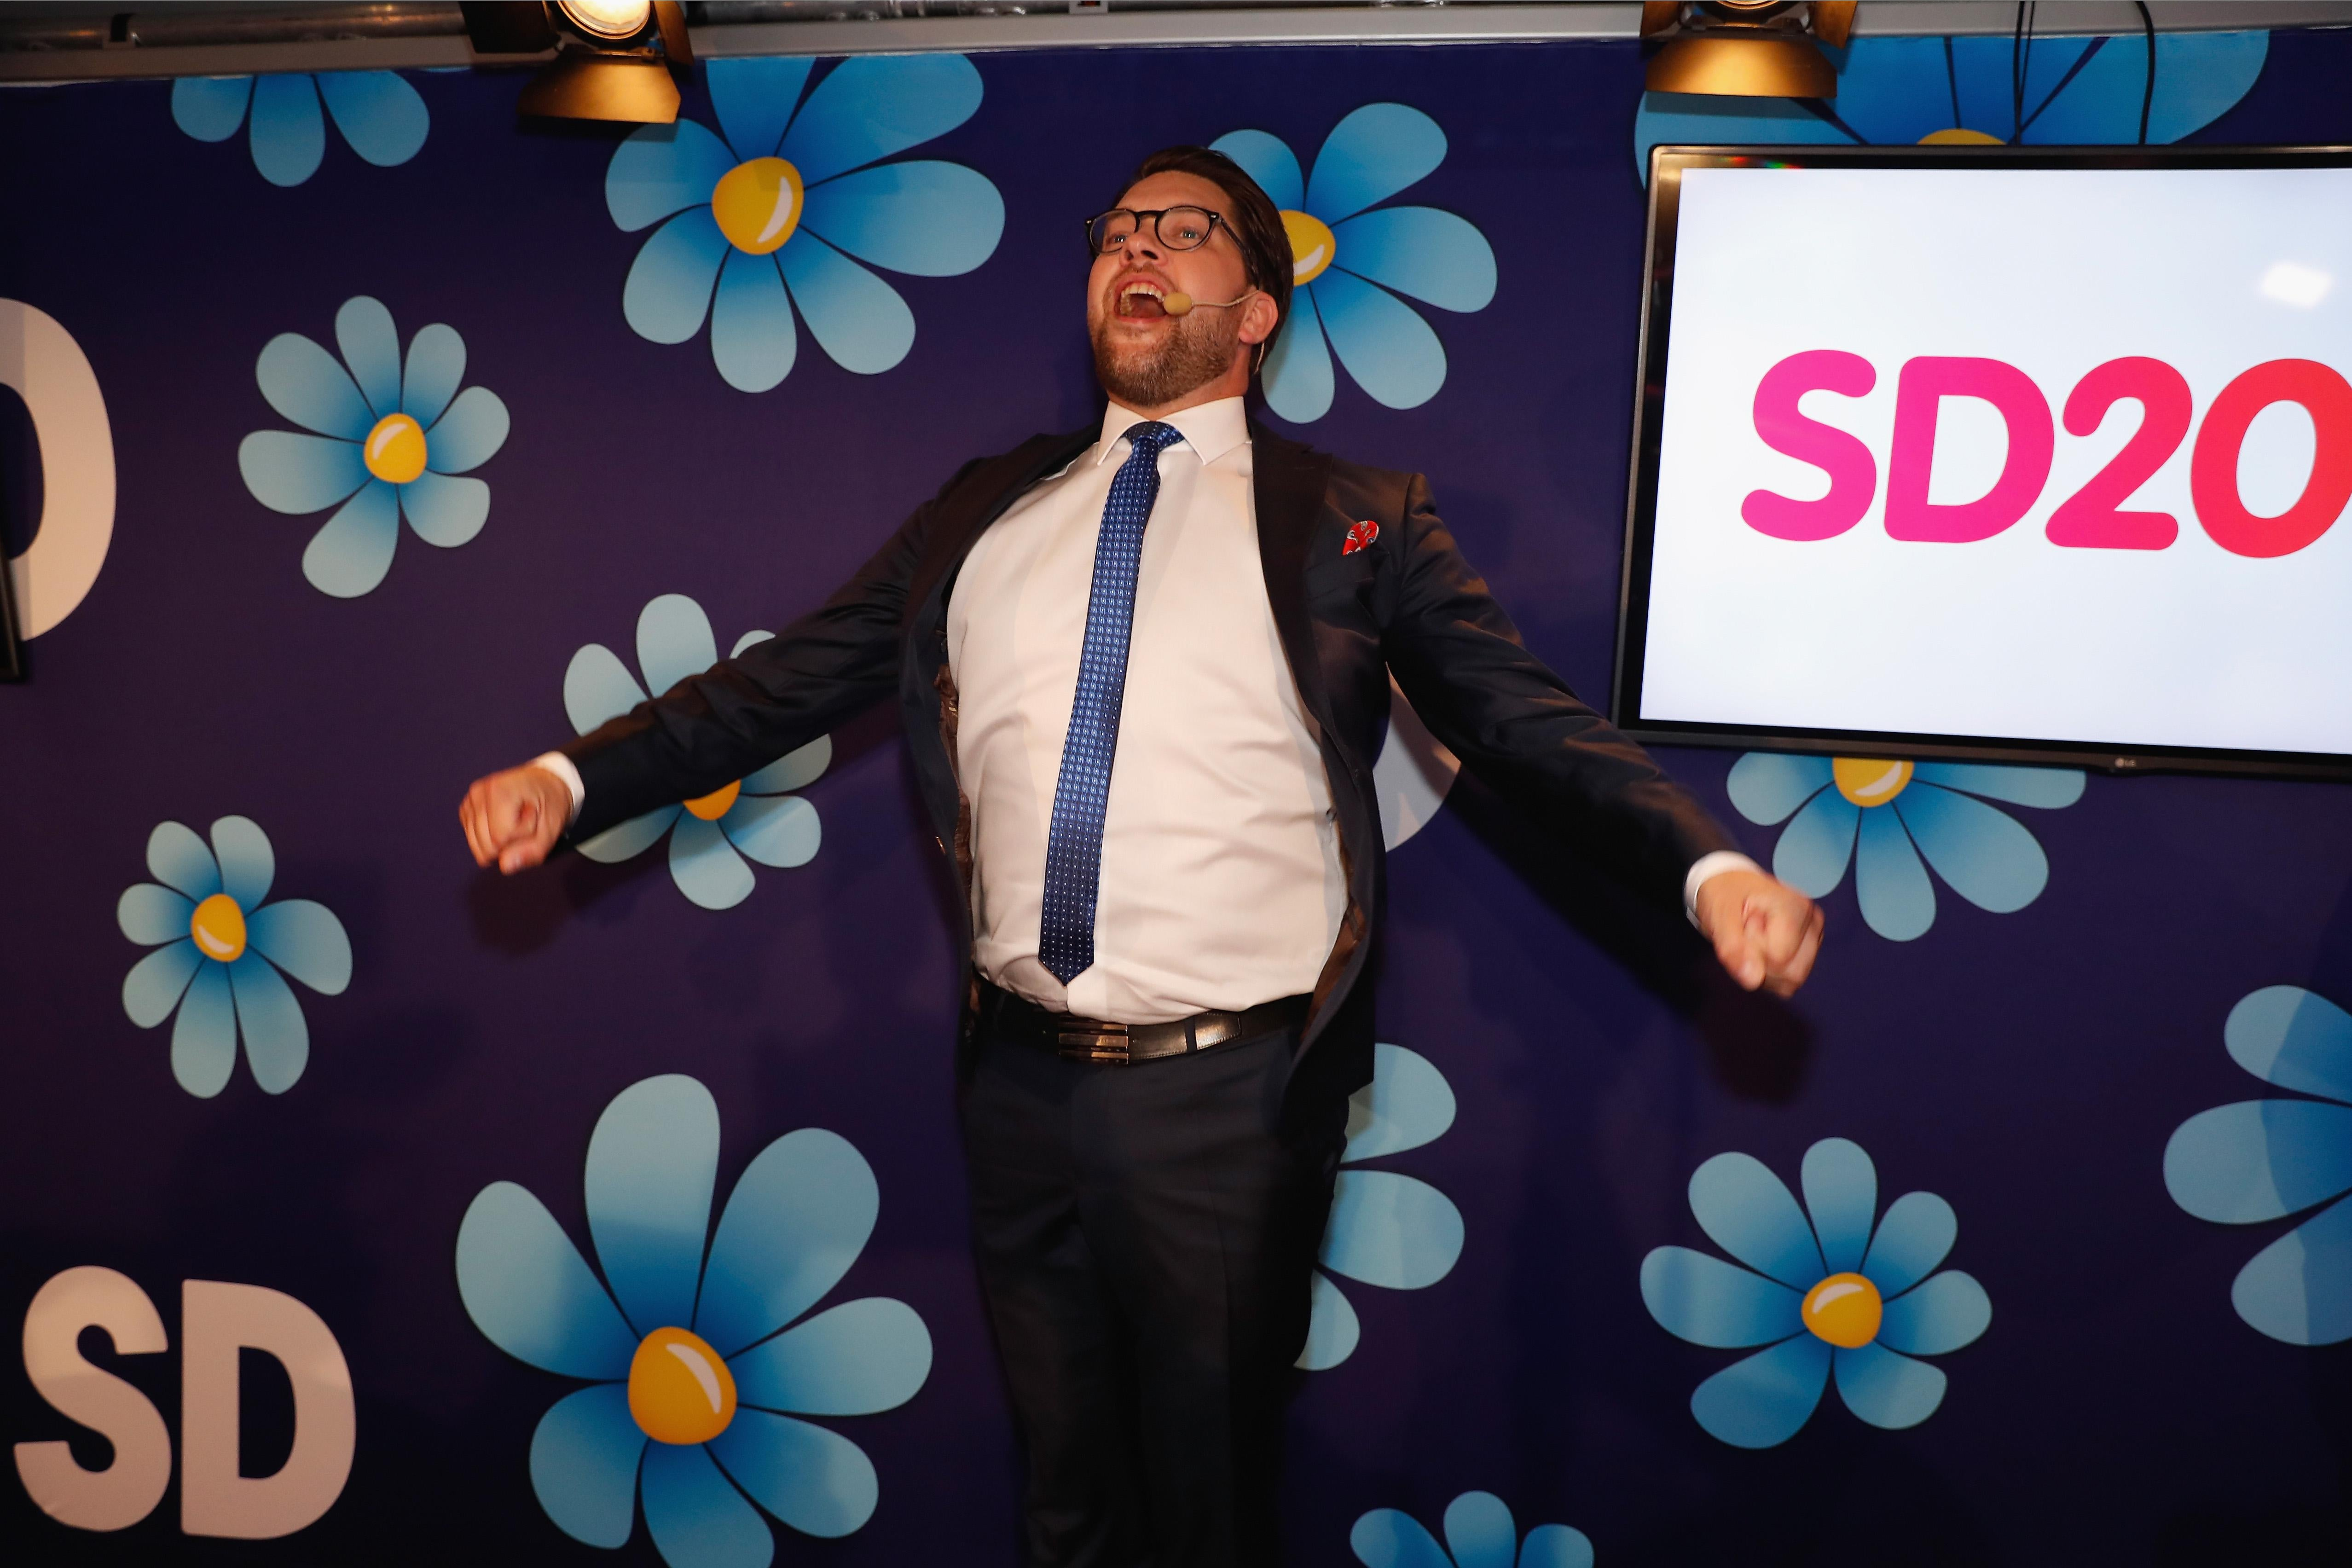 STOCKHOLM, SWEDEN - SEPTEMBER 09: Leader of the far-right Sweden Democrats Jimmy Akesson speaks to members and supporters at the party election center on September 9, 2018 in Stockholm, Sweden. Swedes have headed to the polls in a tightly contested general election where immigration has been a central issue of a heated campaign and which could see the far-right Sweden Democrats make significant gains. (Photo by Michael Campanella/Getty Images)